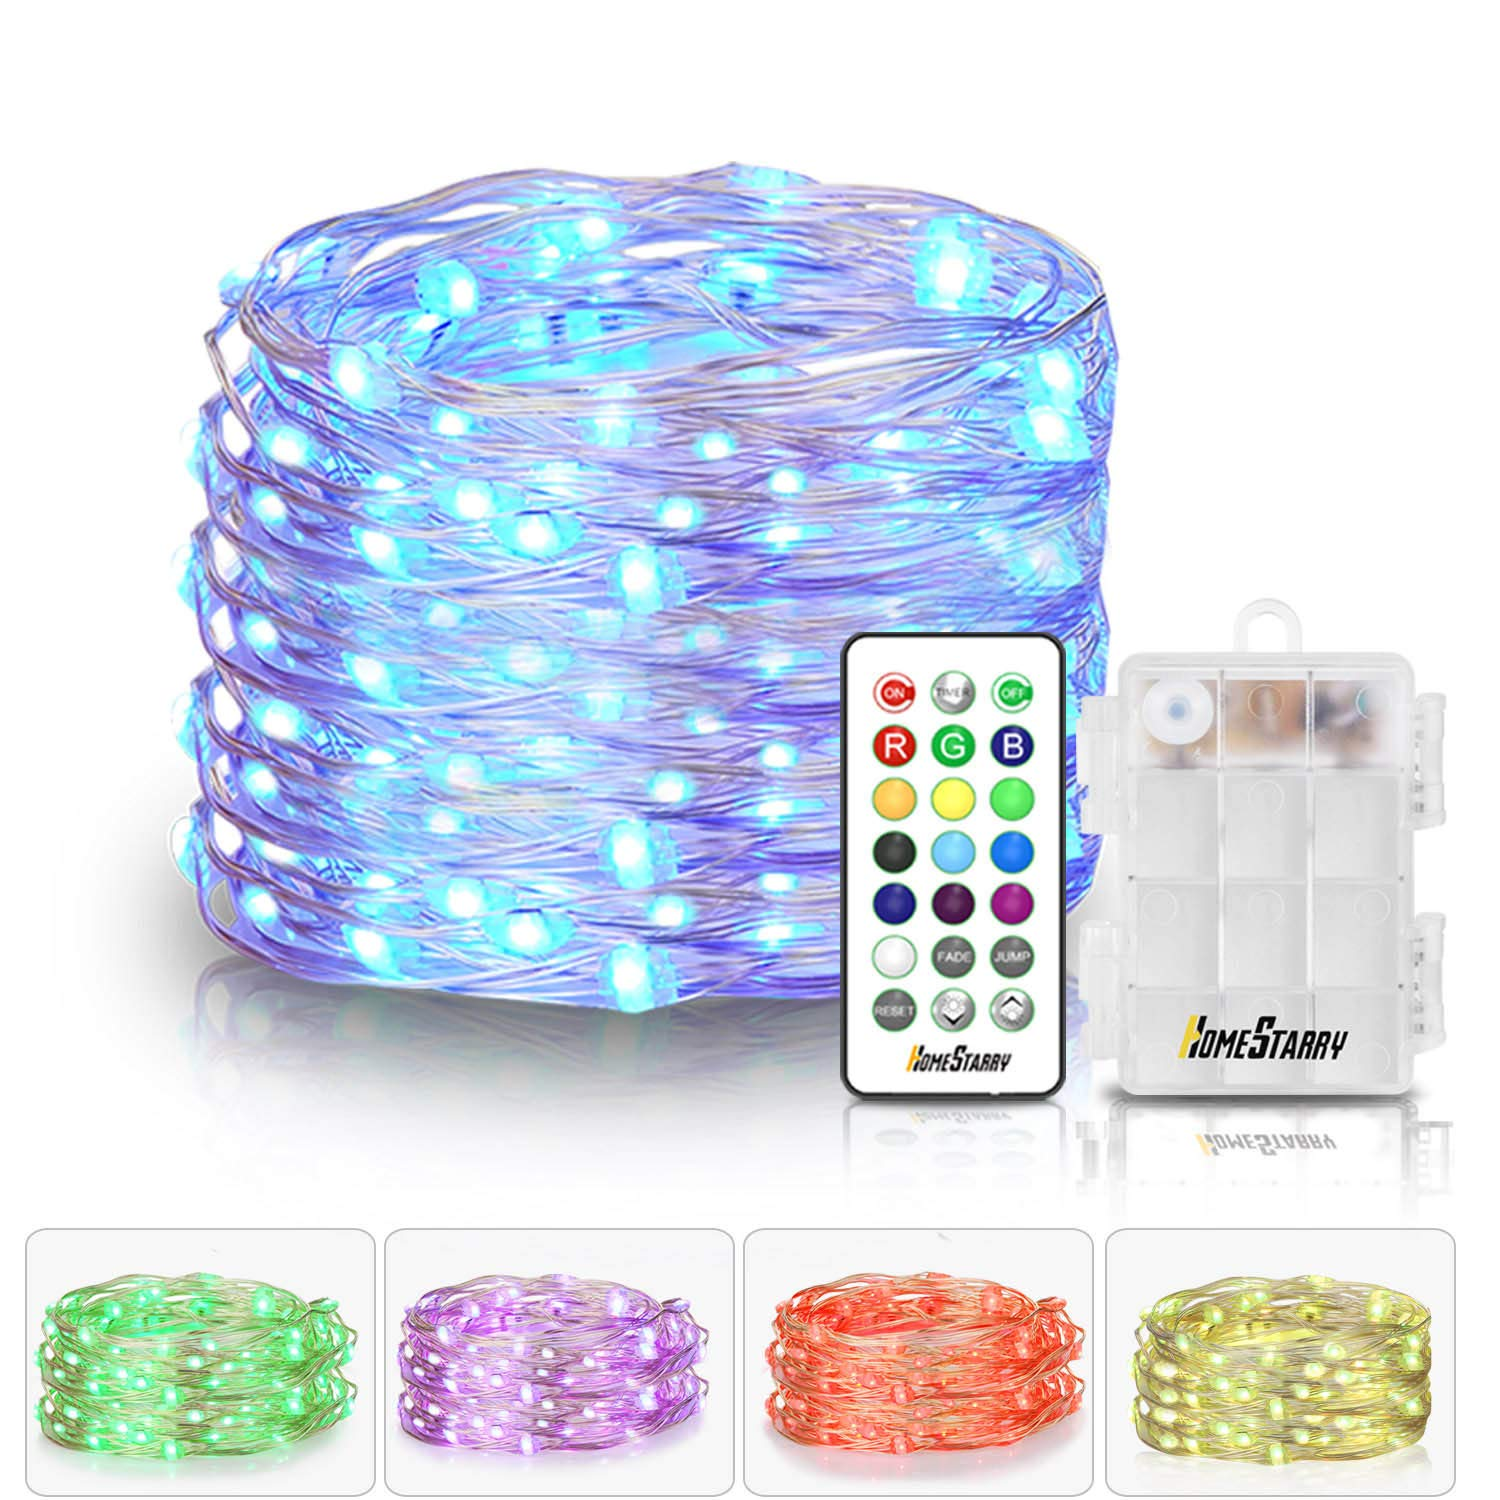 best website b652a 86e91 Homestarry Fairy Lights Battery Operated Outdoor String Lights with Remote  Color Changing Lights for Bedroom Indoor Wedding Stroller Christmas ...